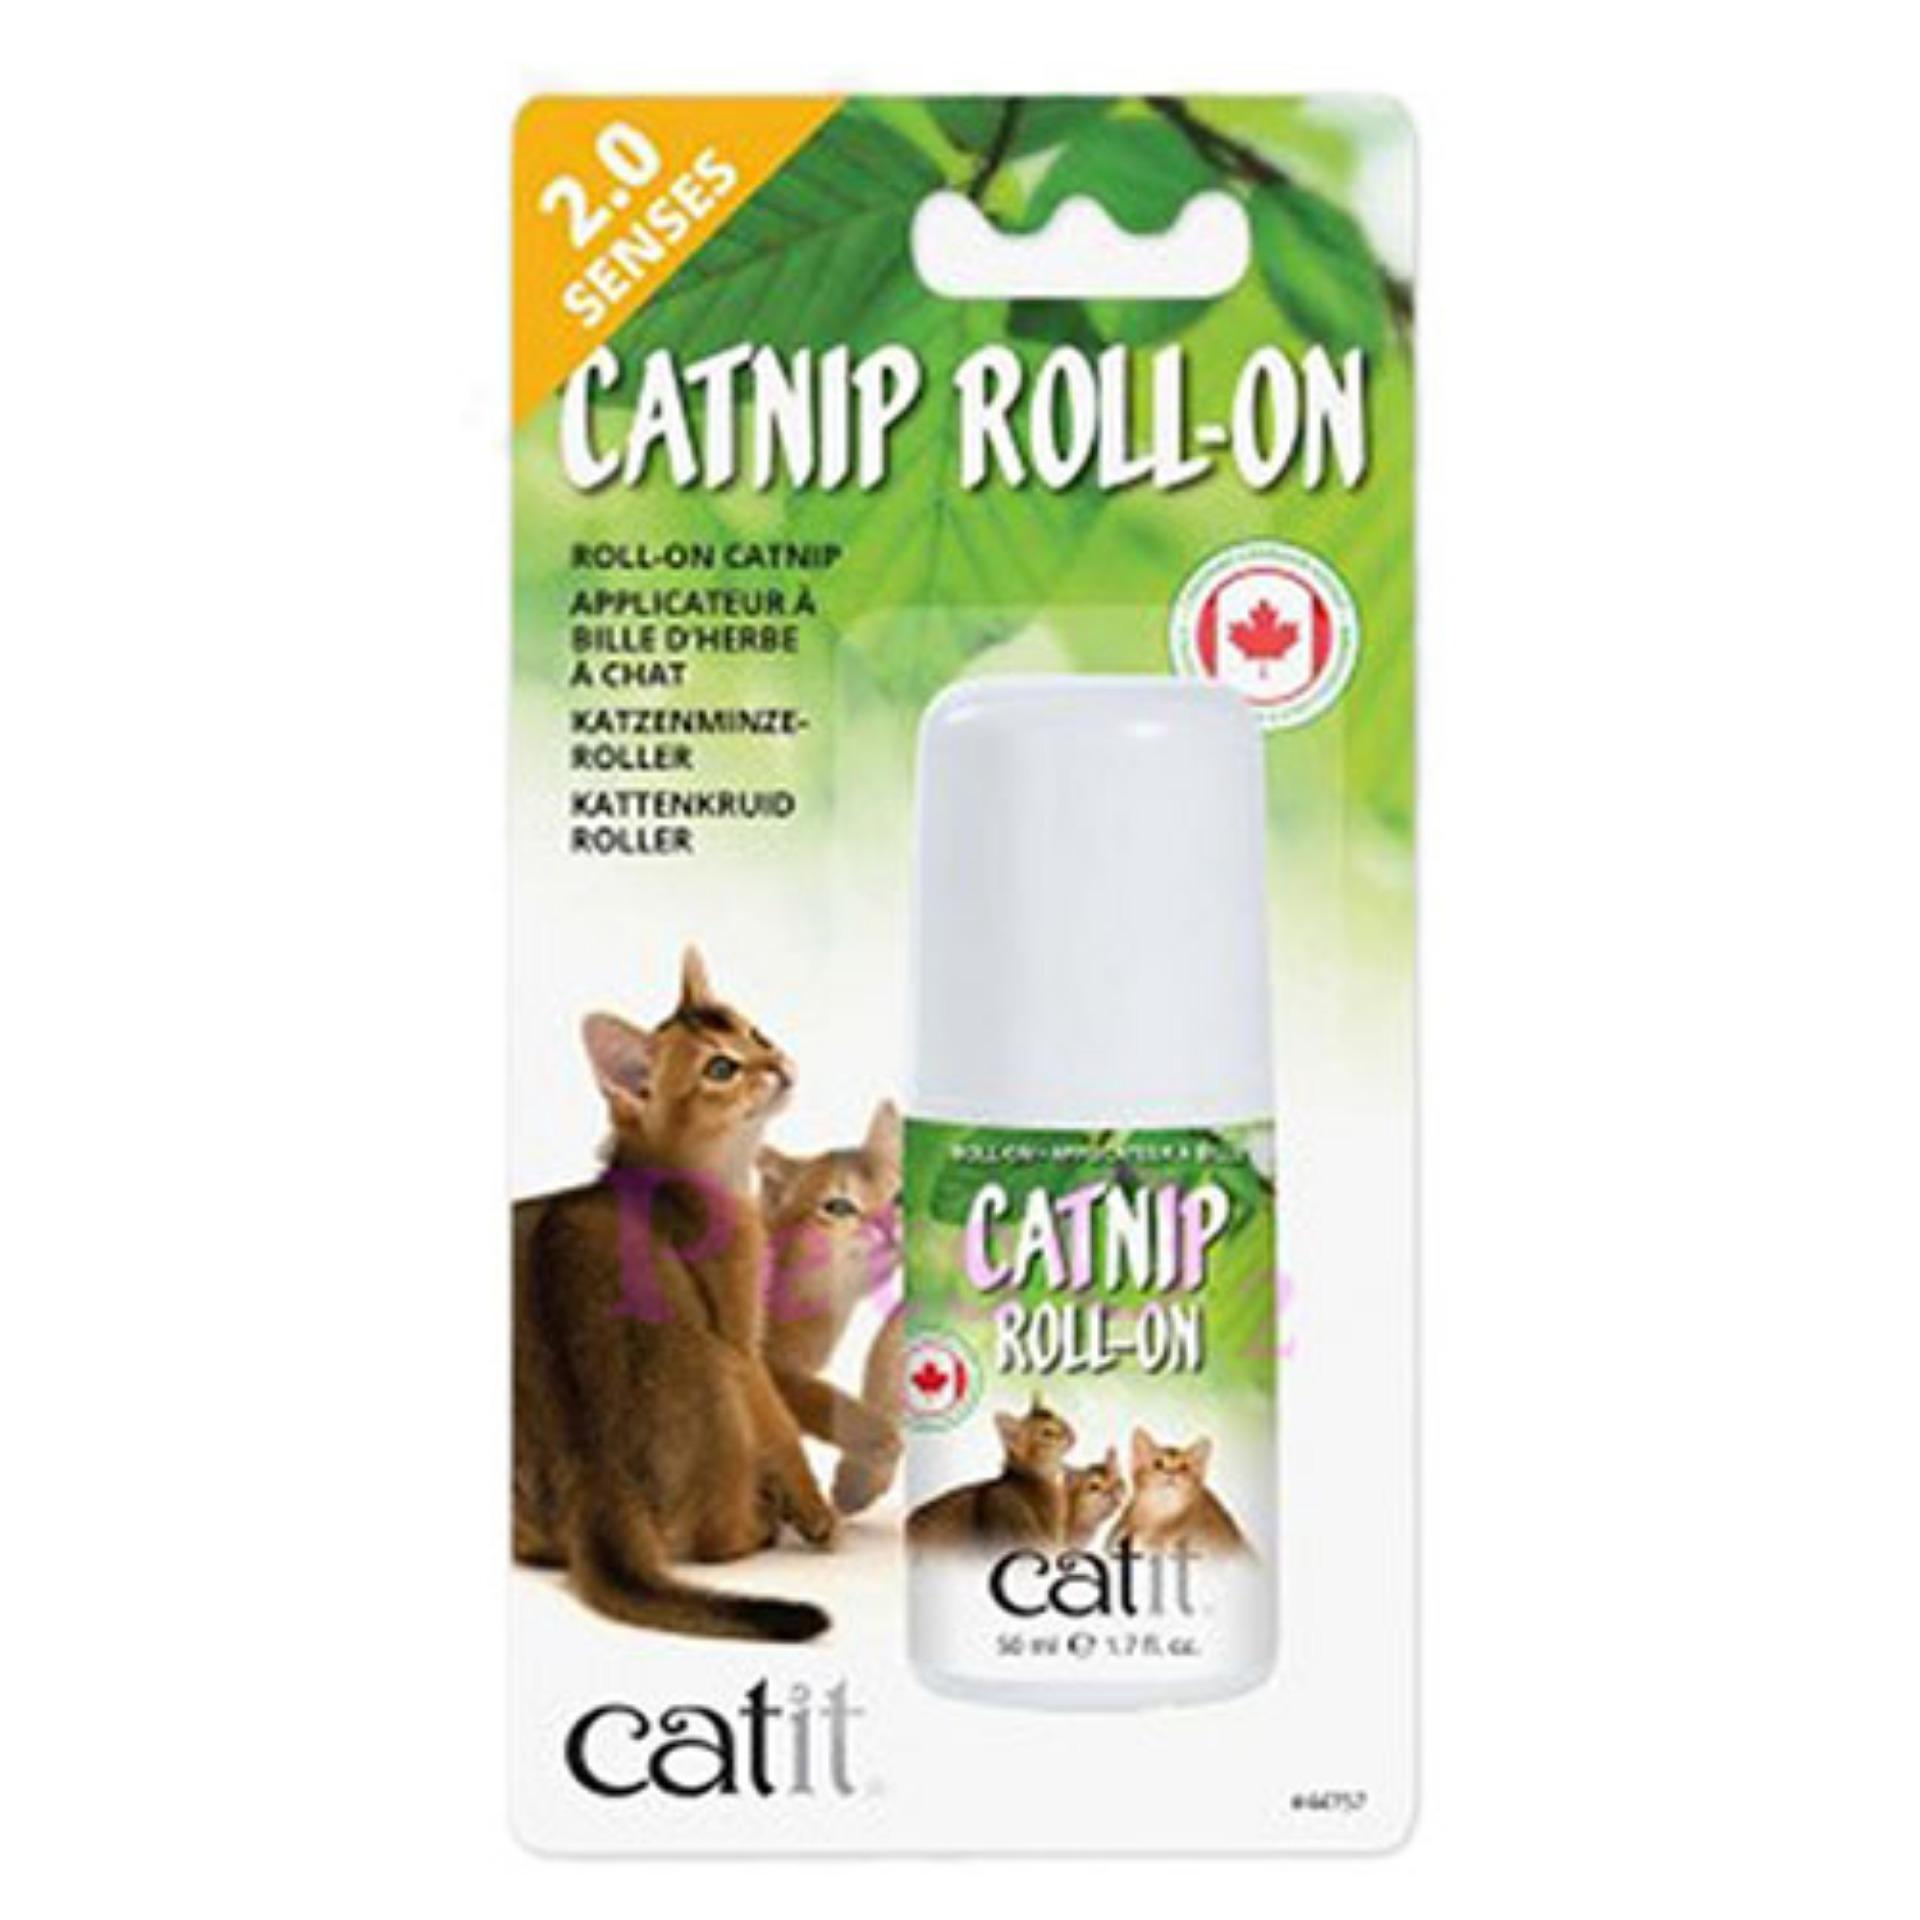 Catit Senses 2.0 Catnip Roll-On 50ml By Petso2.